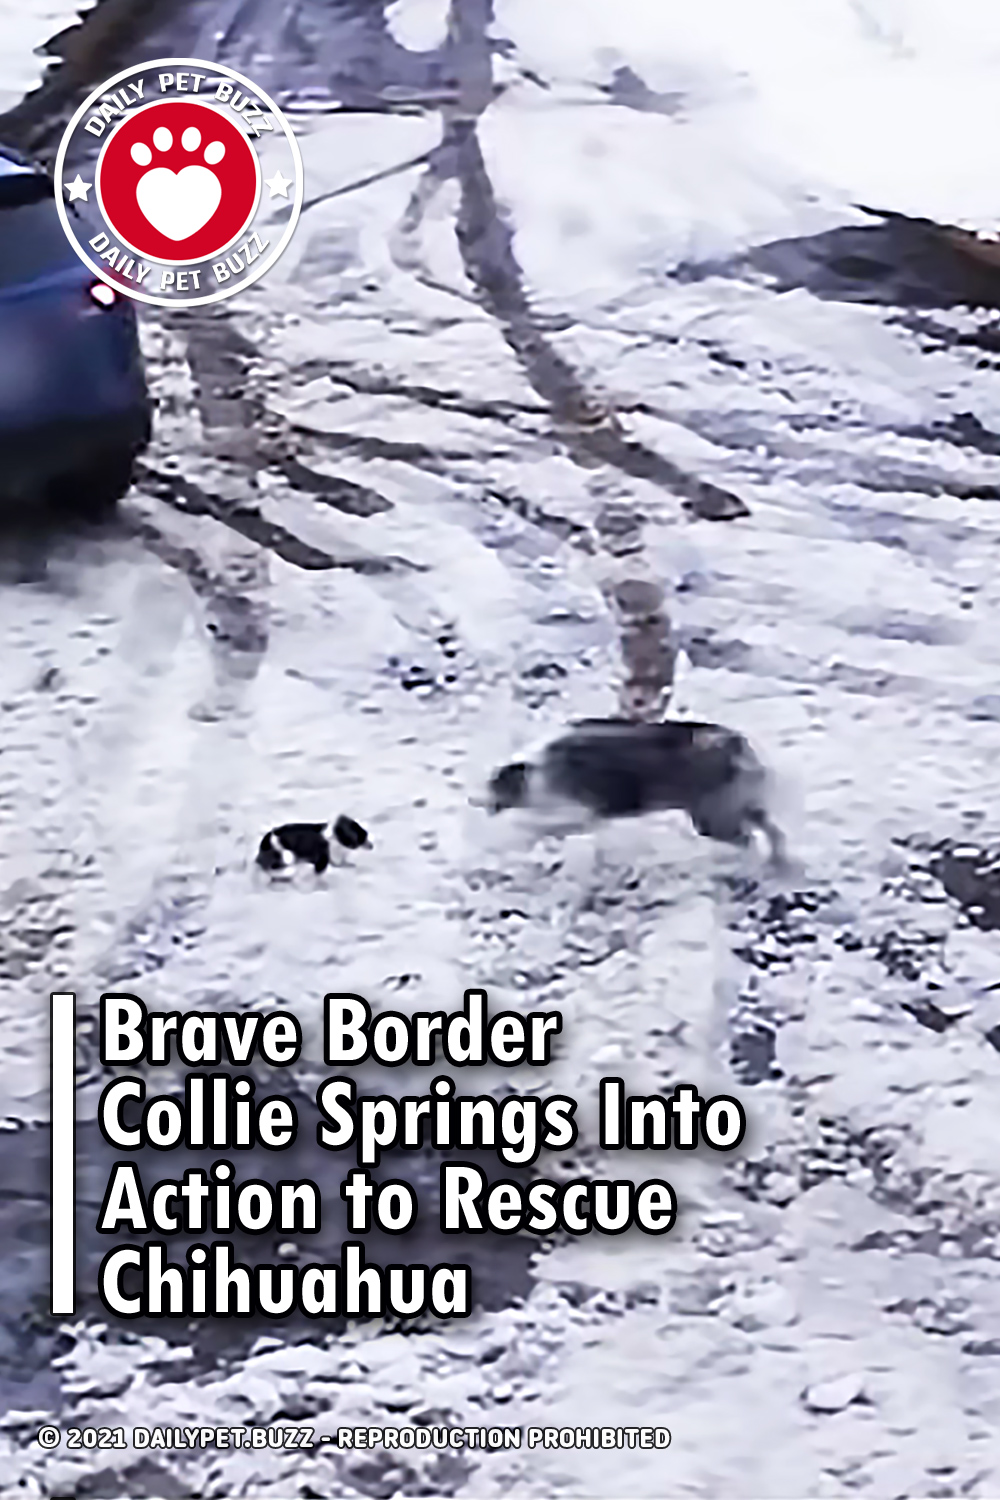 Brave Border Collie Springs Into Action to Rescue Chihuahua